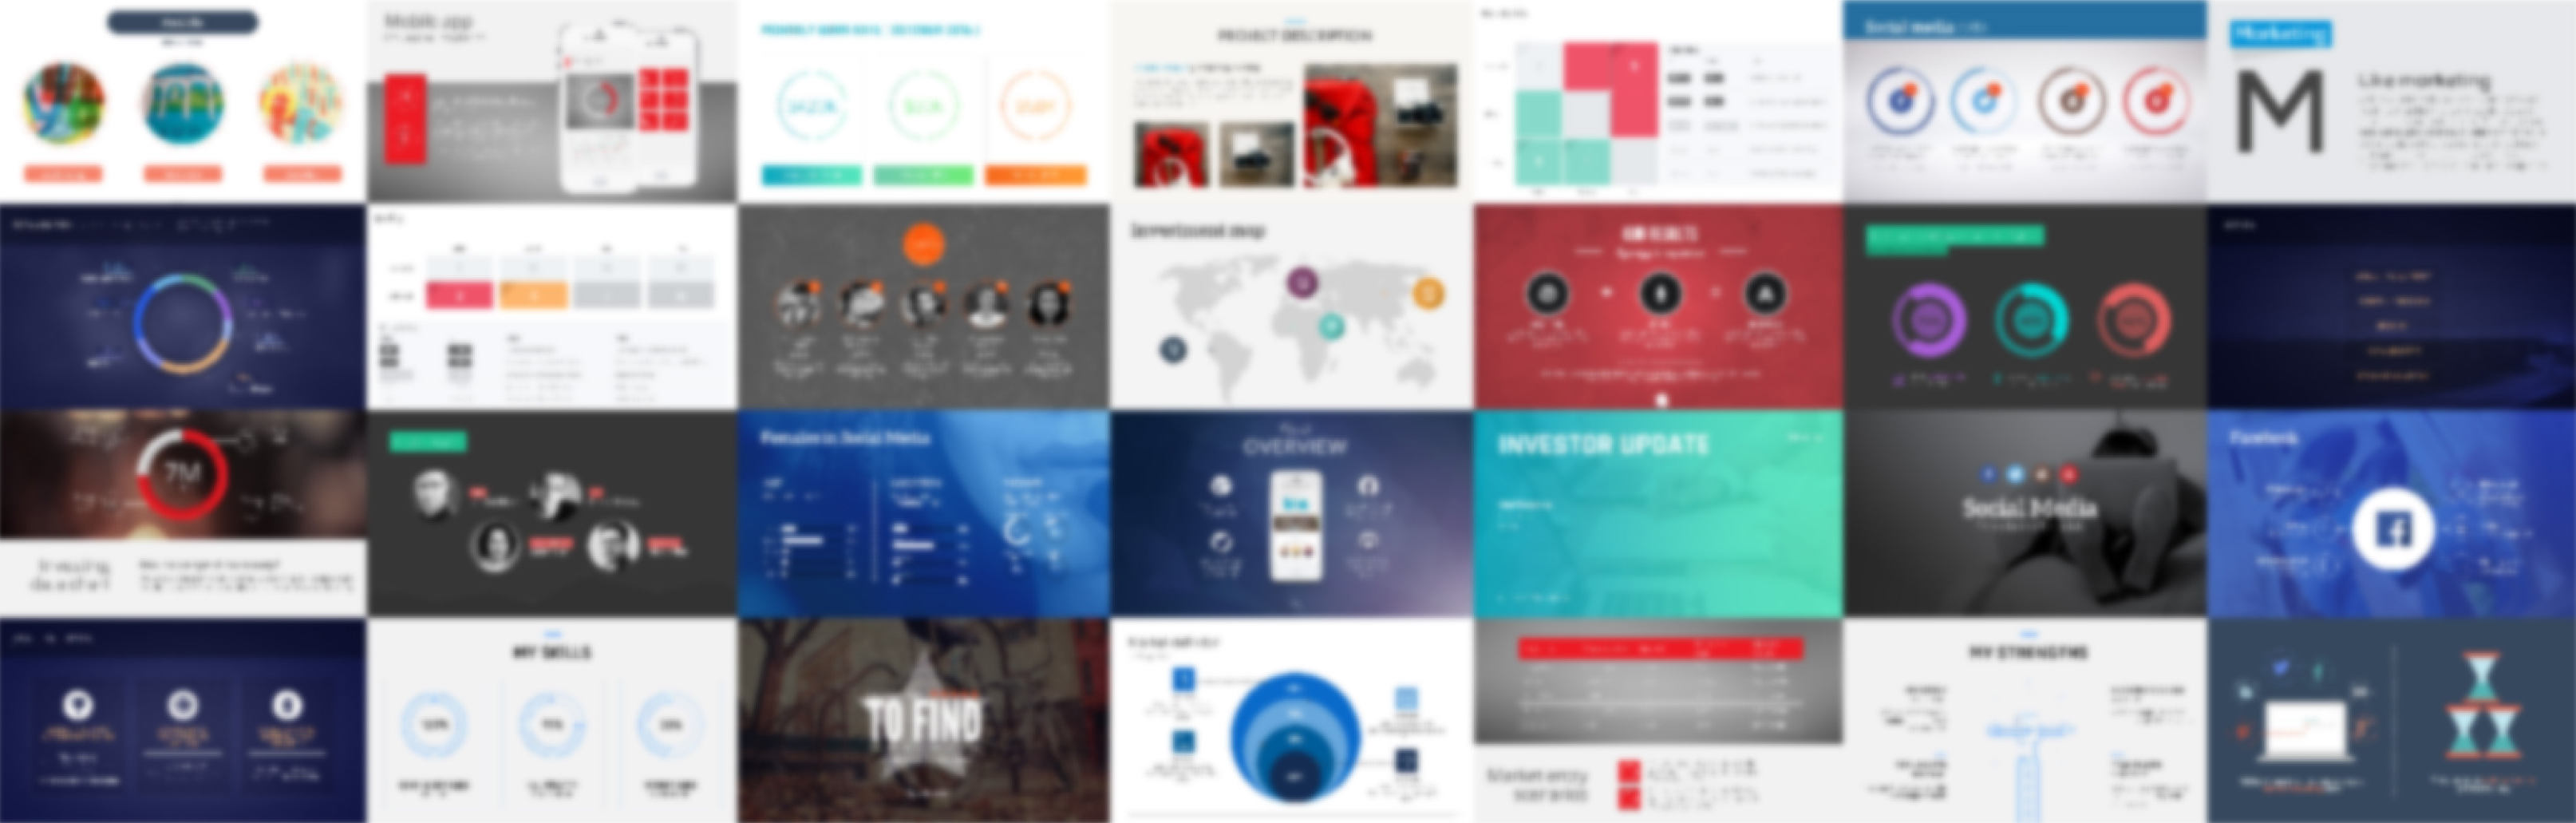 17 best powerpoint templates 2018 updated improve presentation toneelgroepblik